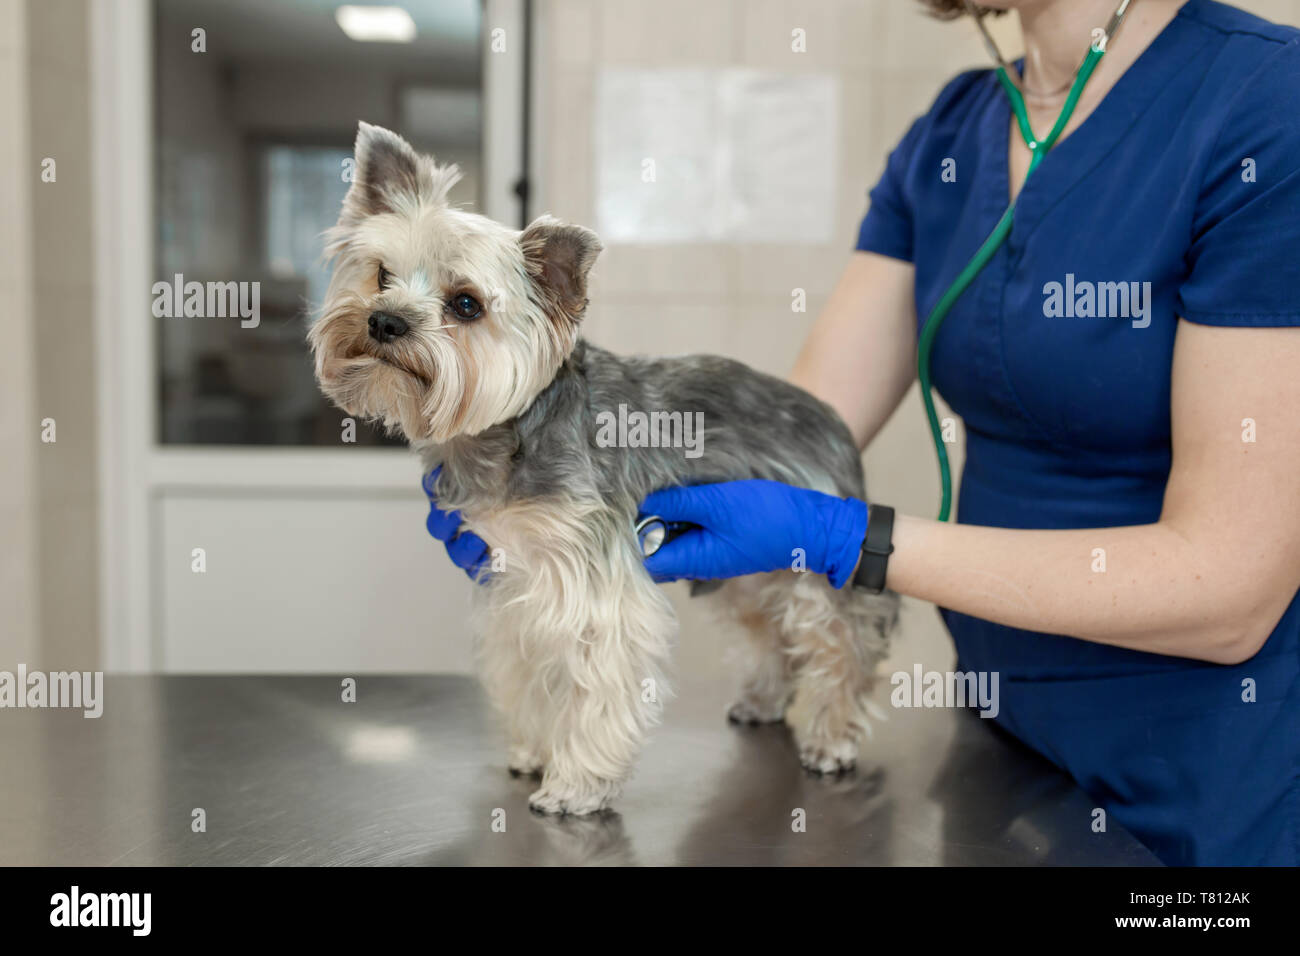 Young smiling professional veterinarian woman exam dog breed yorkshire terrier using stethoscope. - Stock Image